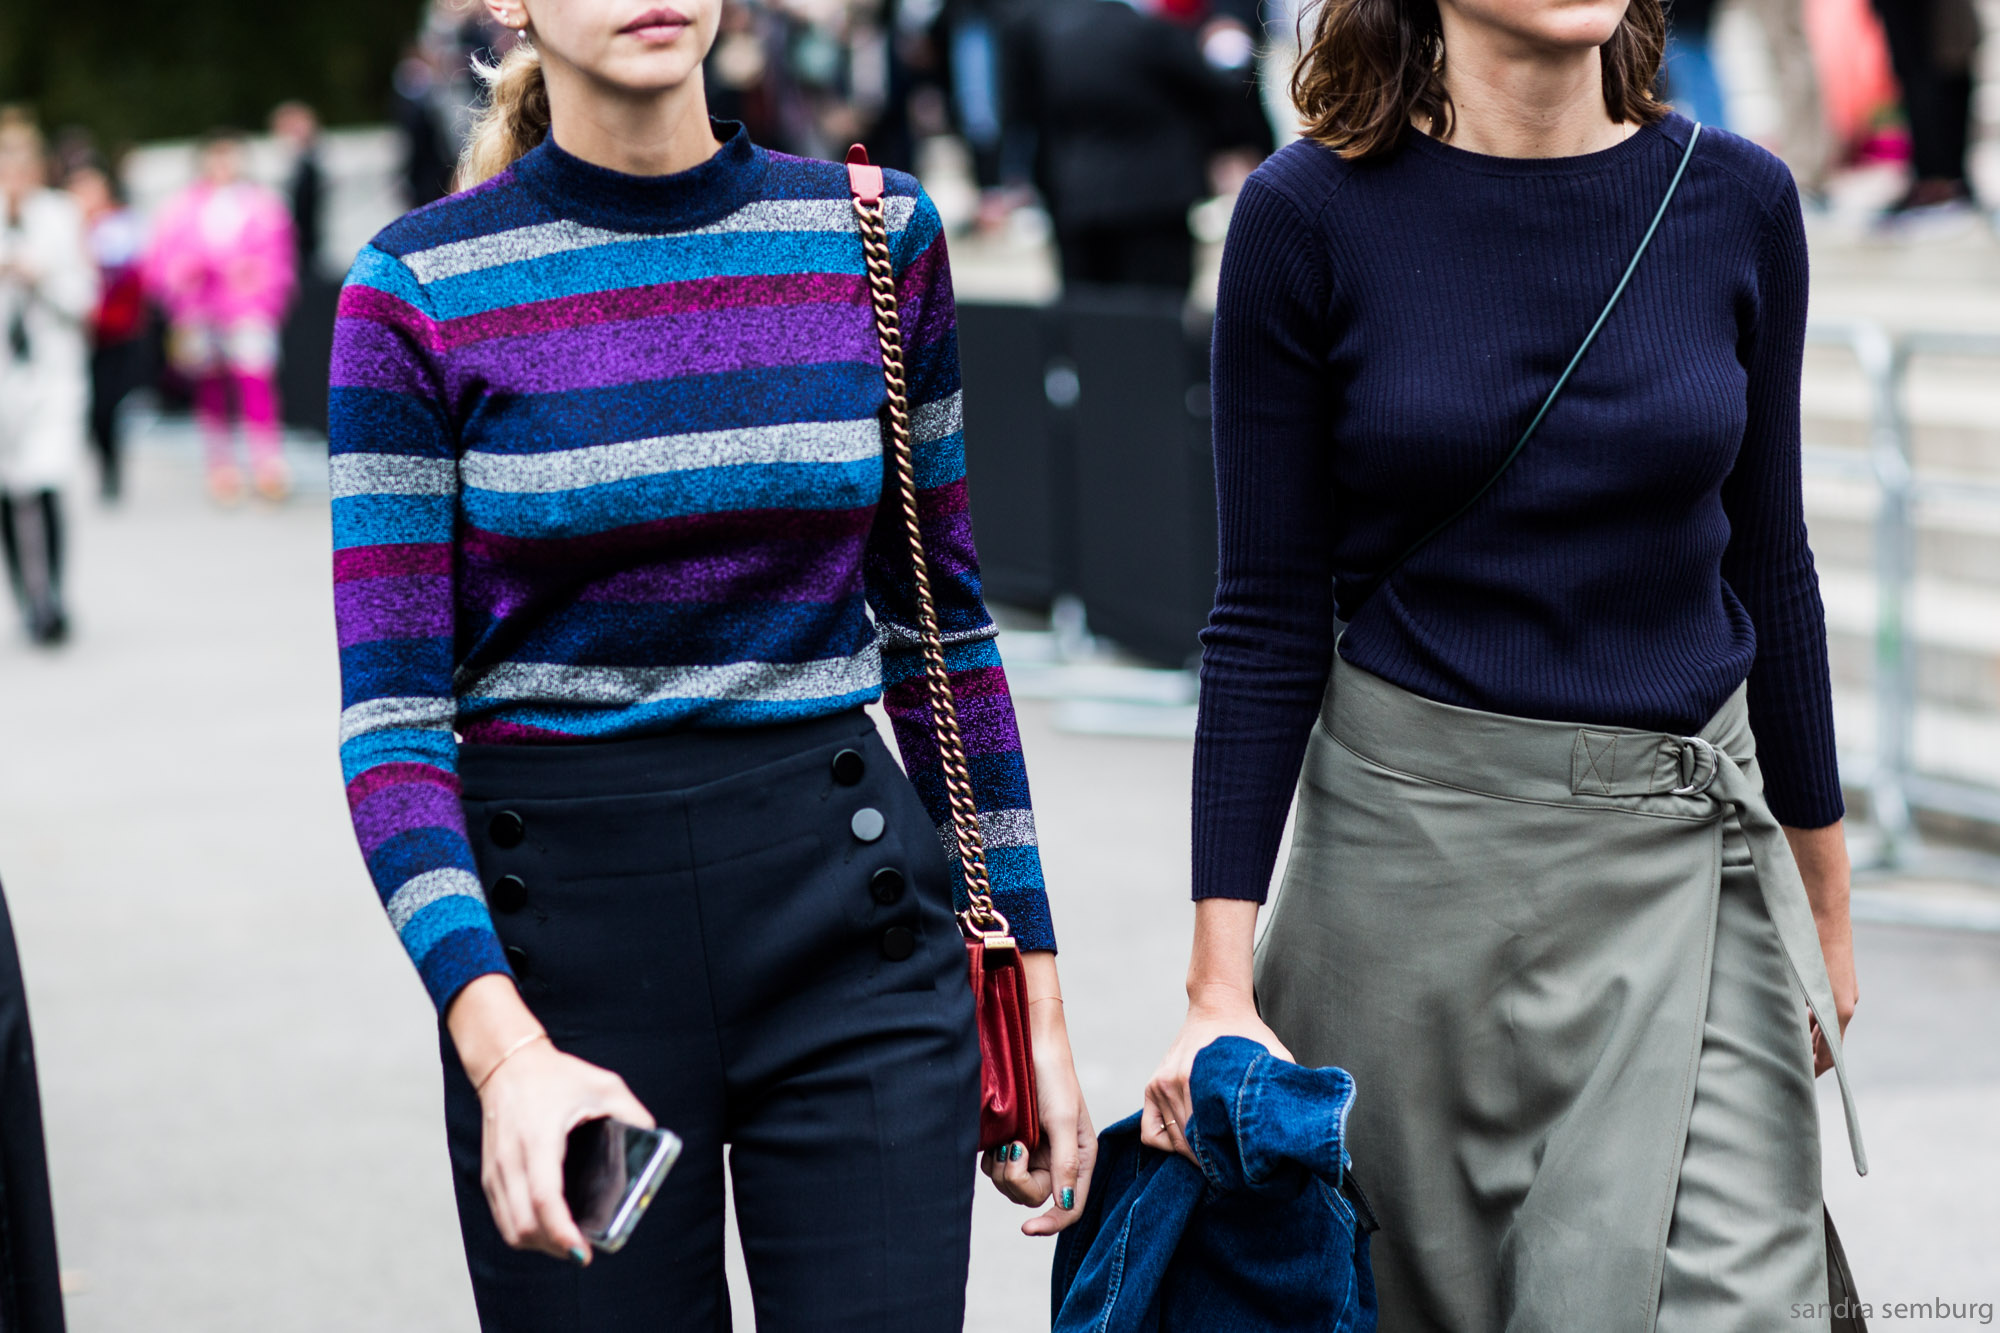 The Most Slimming Way to Wear Stripes Isn't What You Think